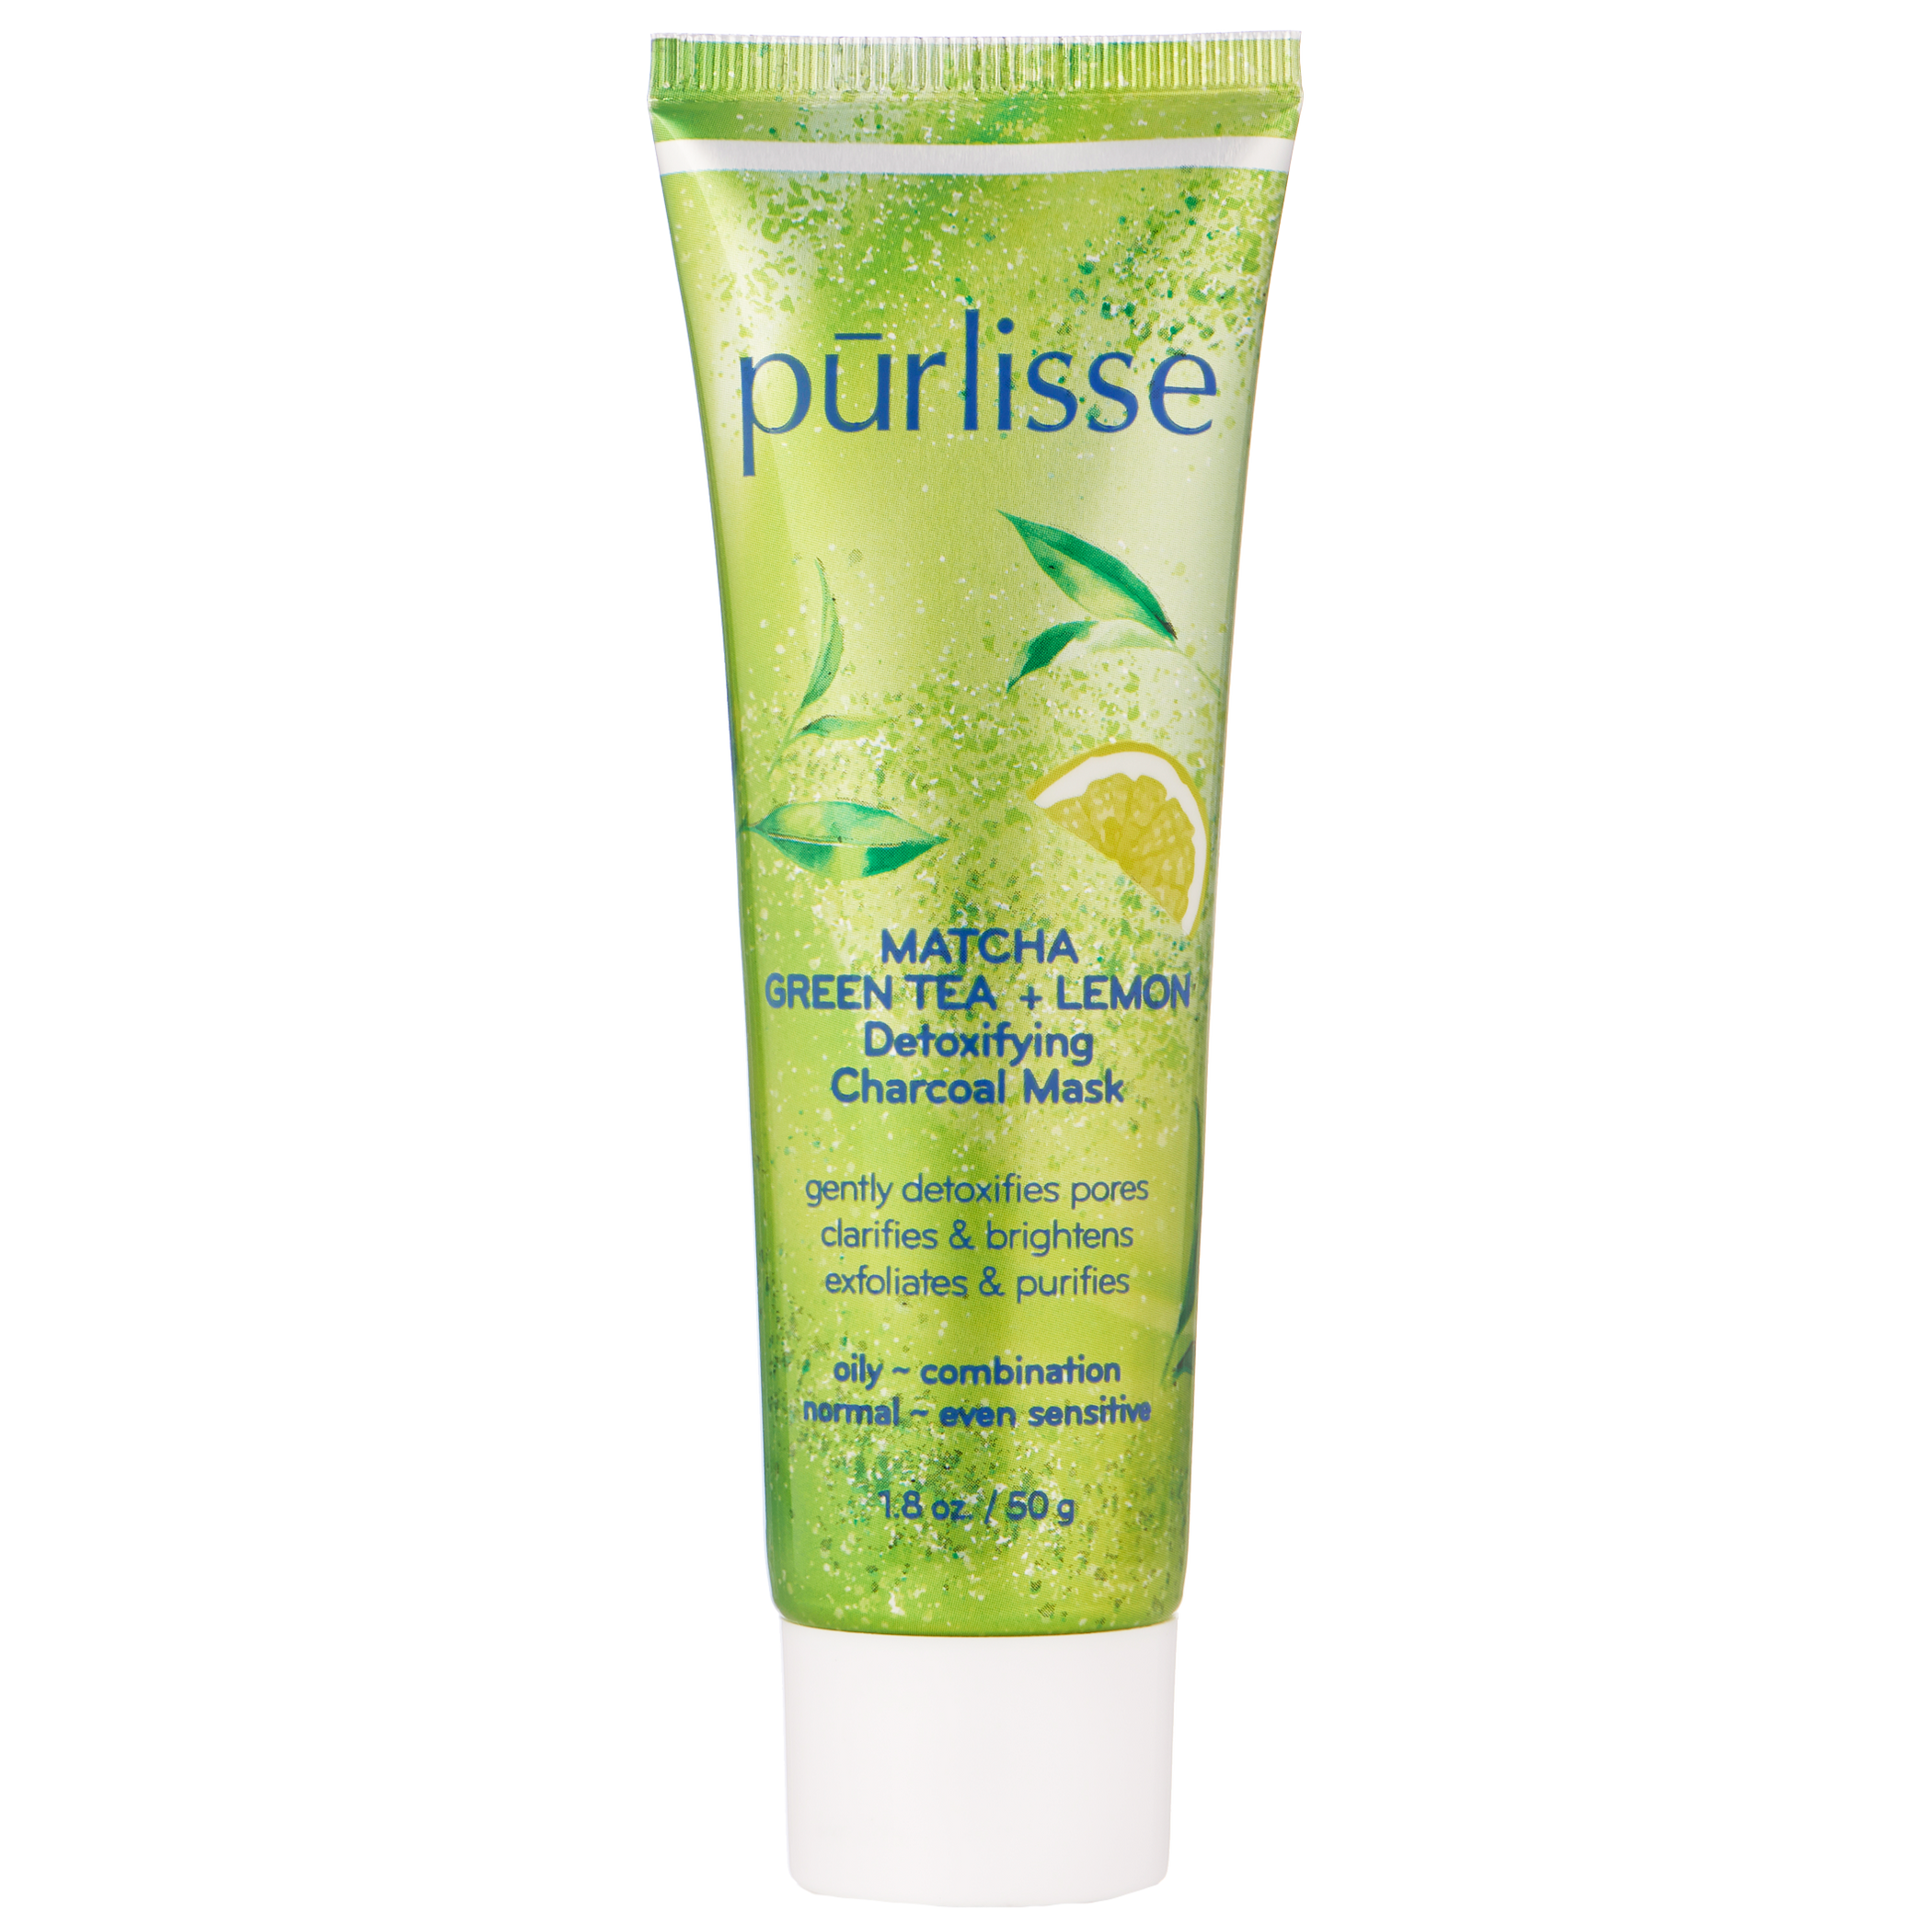 Purlisse - Matcha Green Tea + Lemon Detoxifying Charcoal Mask